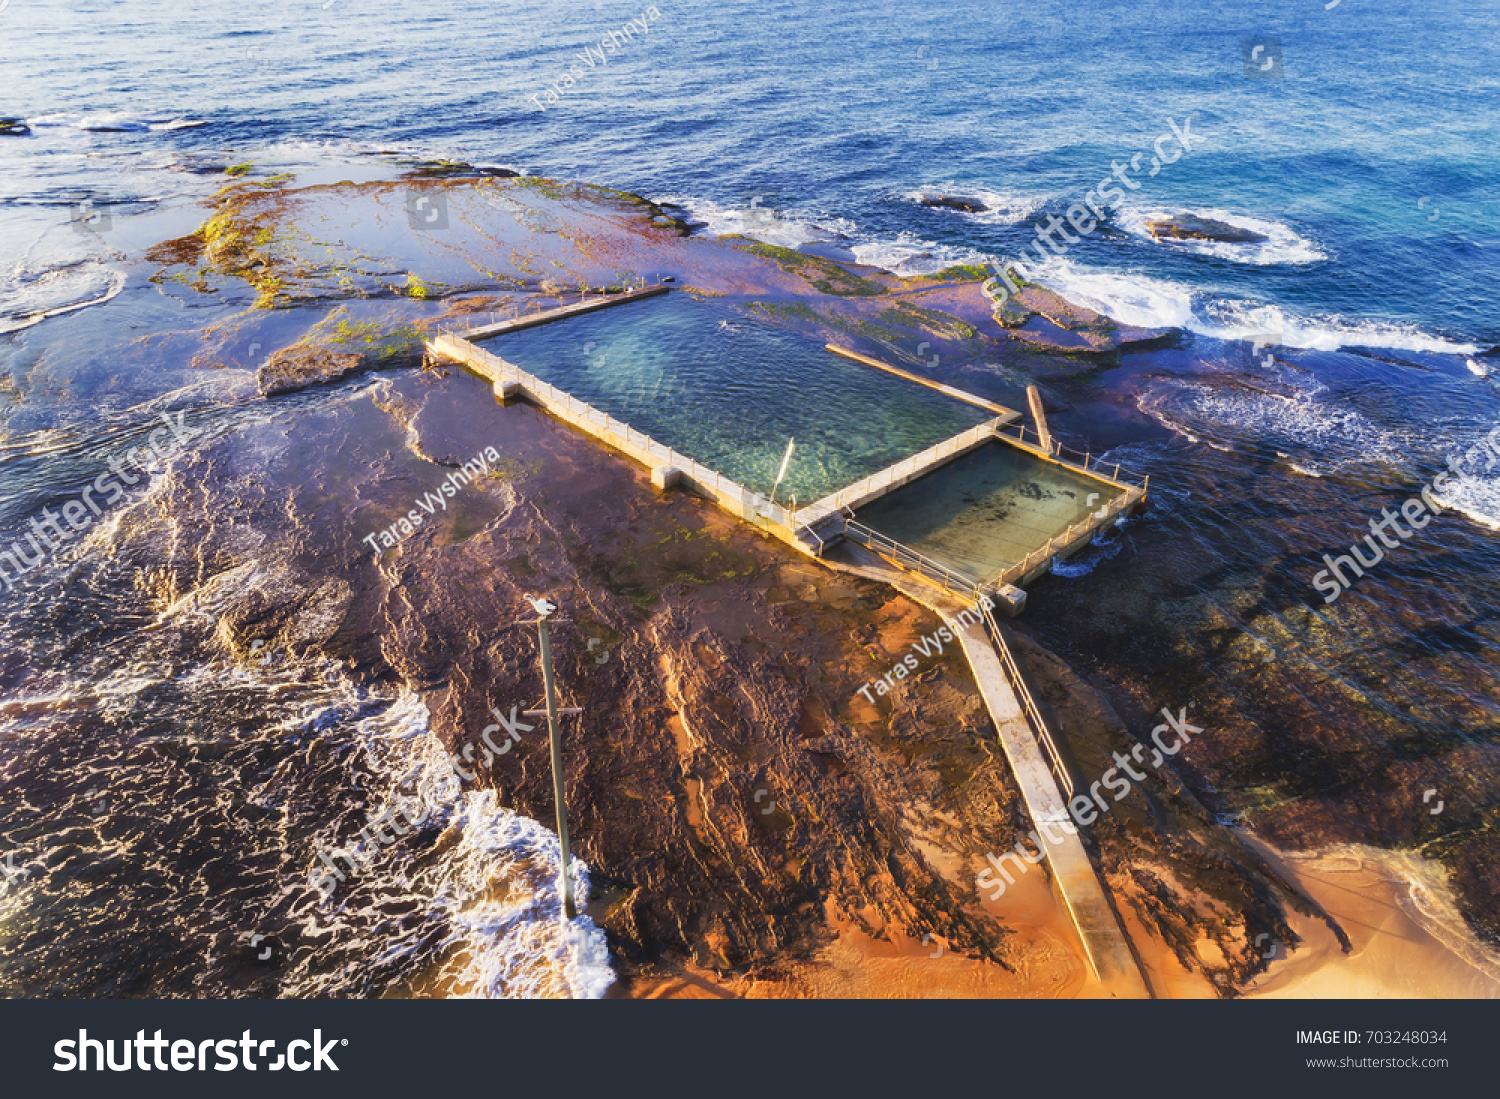 Remote isolated rock pool off mona stock photo 703248034 remote isolated rock pool off mona vale beach at high tide with swimmer breaking waves of nvjuhfo Gallery